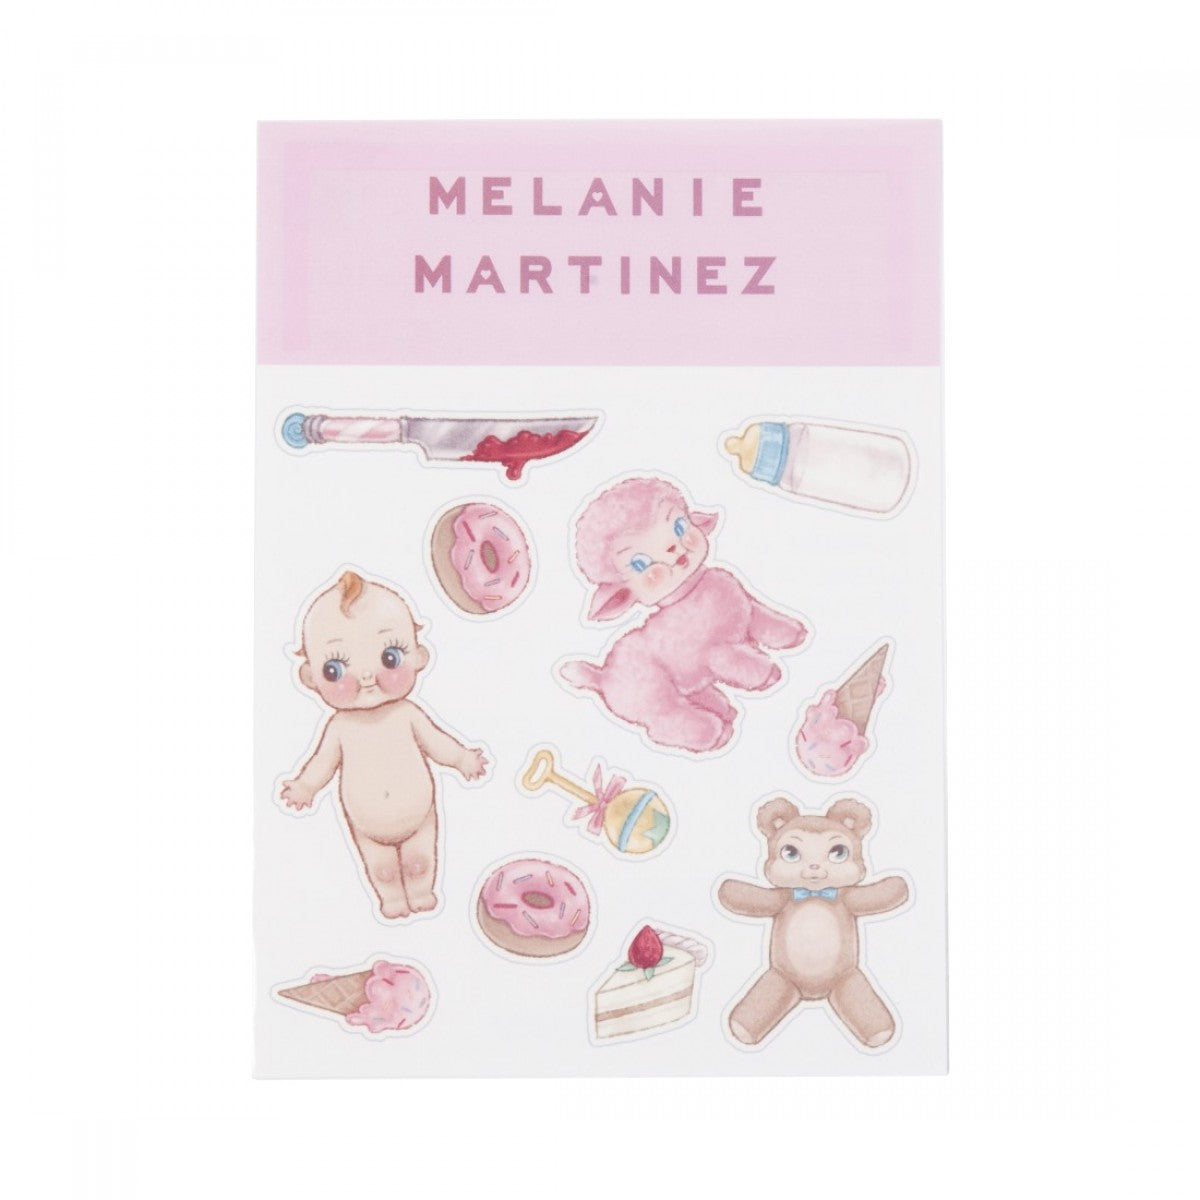 Melanie Martinez Toy Temporary Tattoo